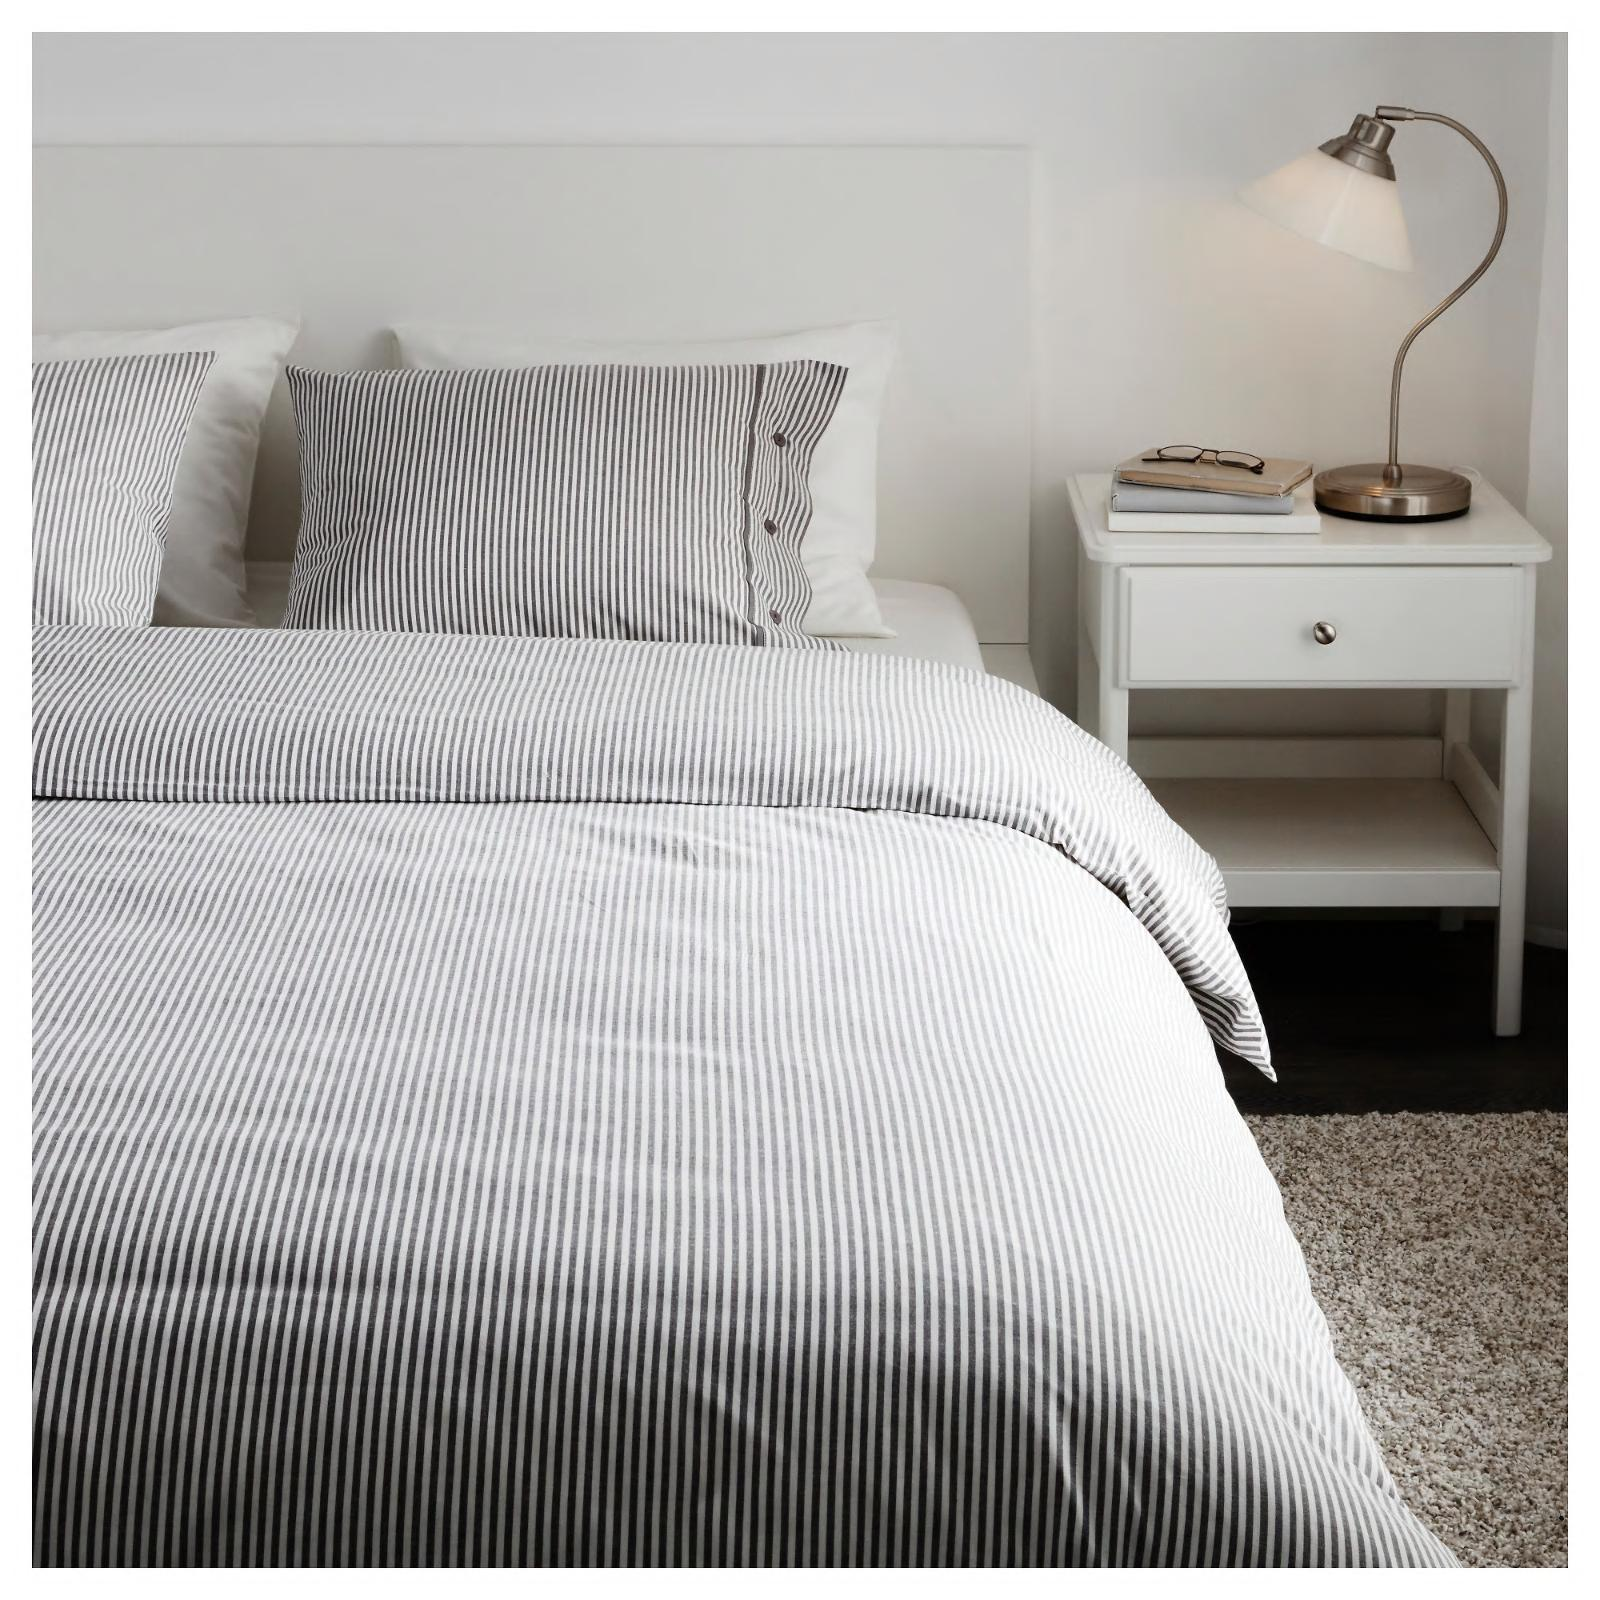 Ikea Cover Bed Set NEW